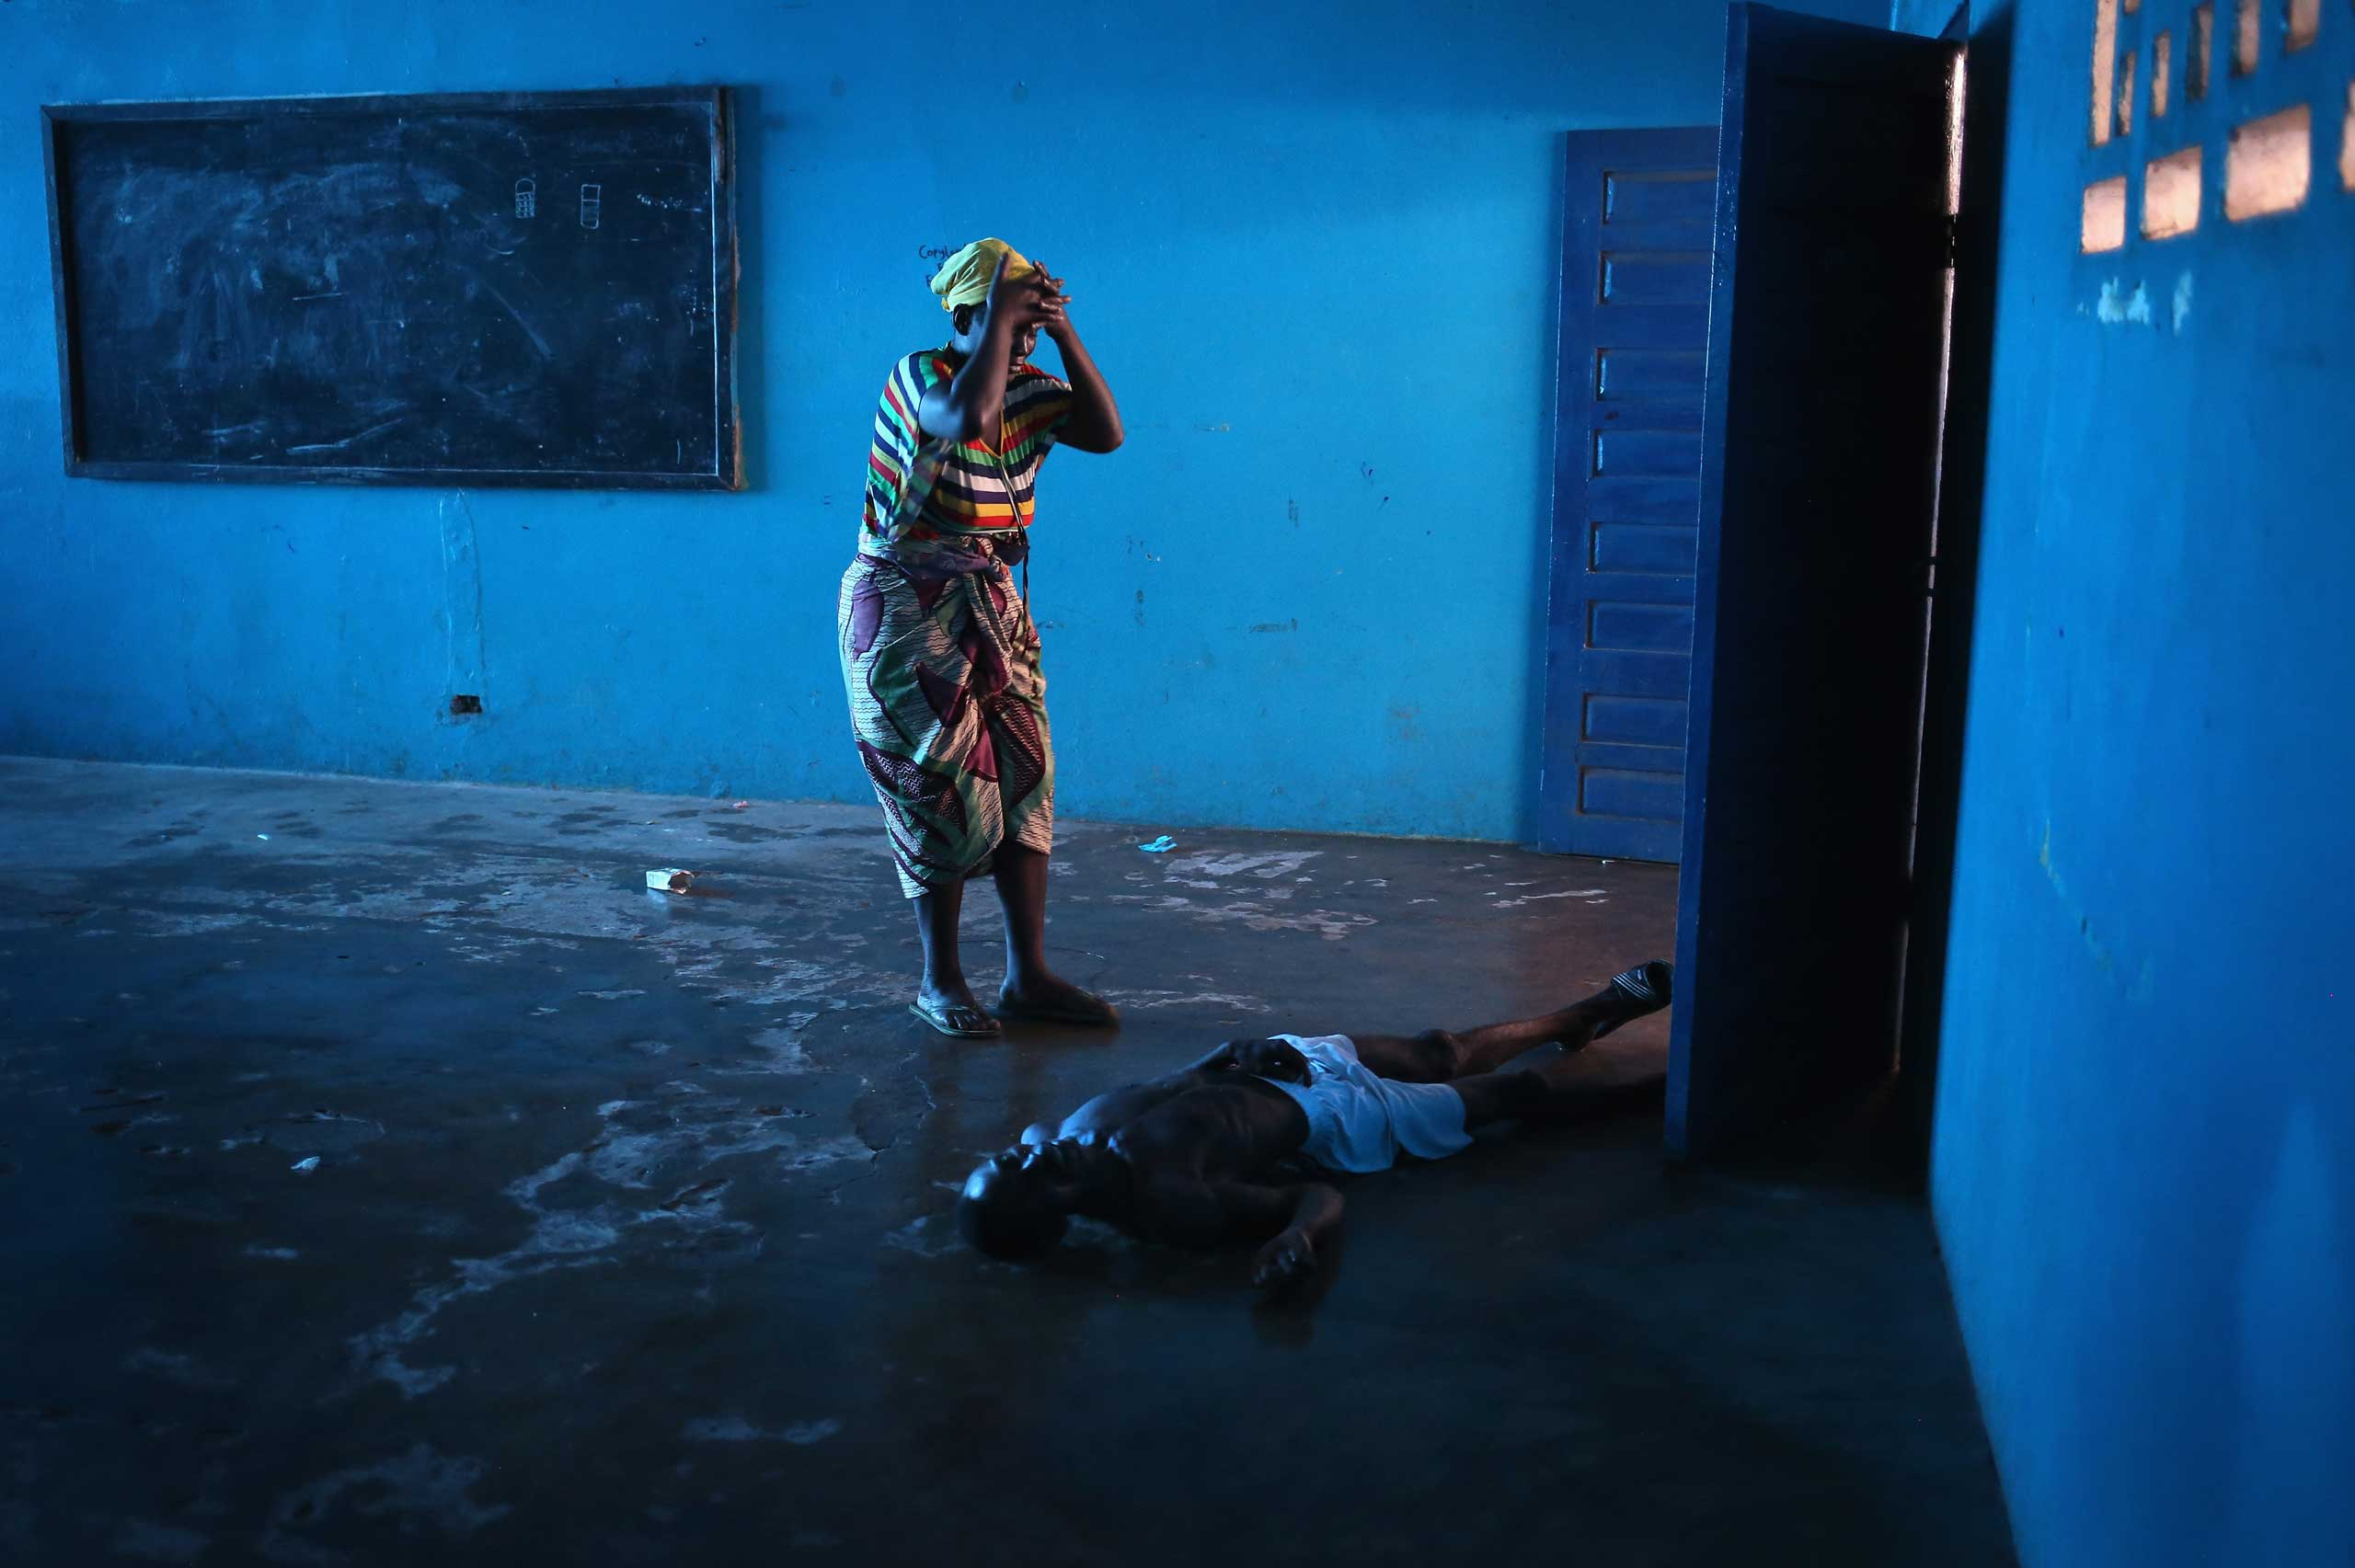 Umu Fambulle stands over her husband Ibrahim after he staggered and fell knocking him unconscious, in an Ebola ward in Monrovia, Liberia., Aug. 15, 2014.